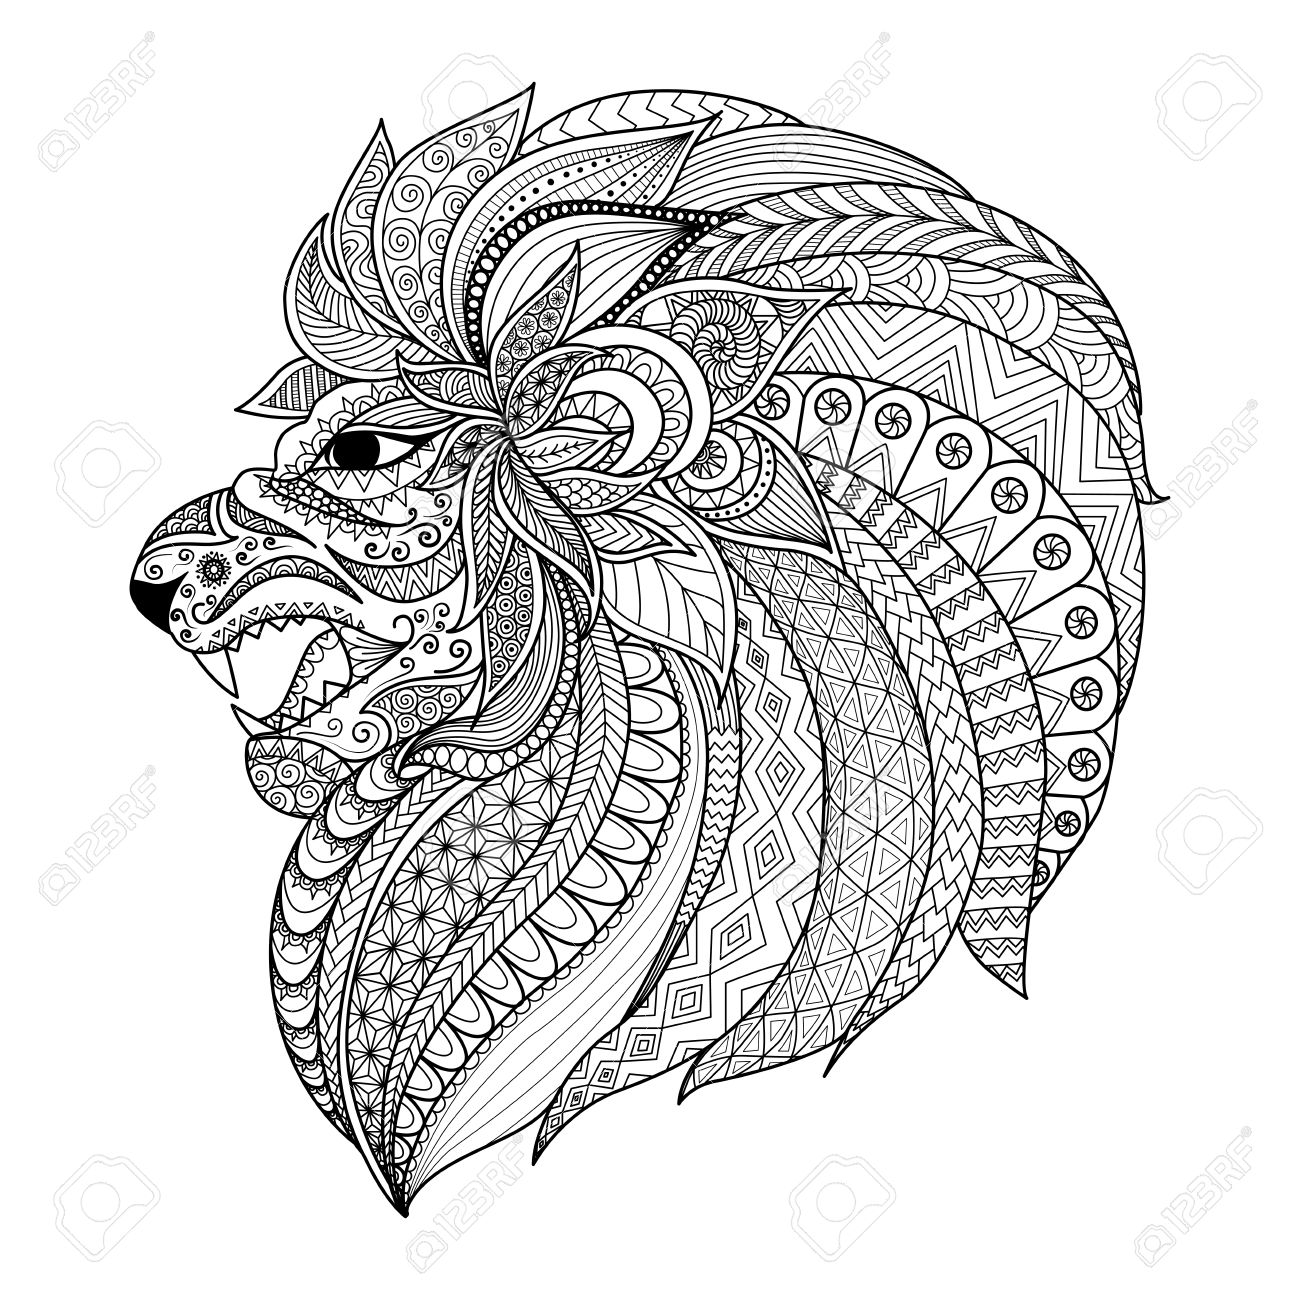 Lion Head Zentangle Stylized For Coloring Book For Adult T